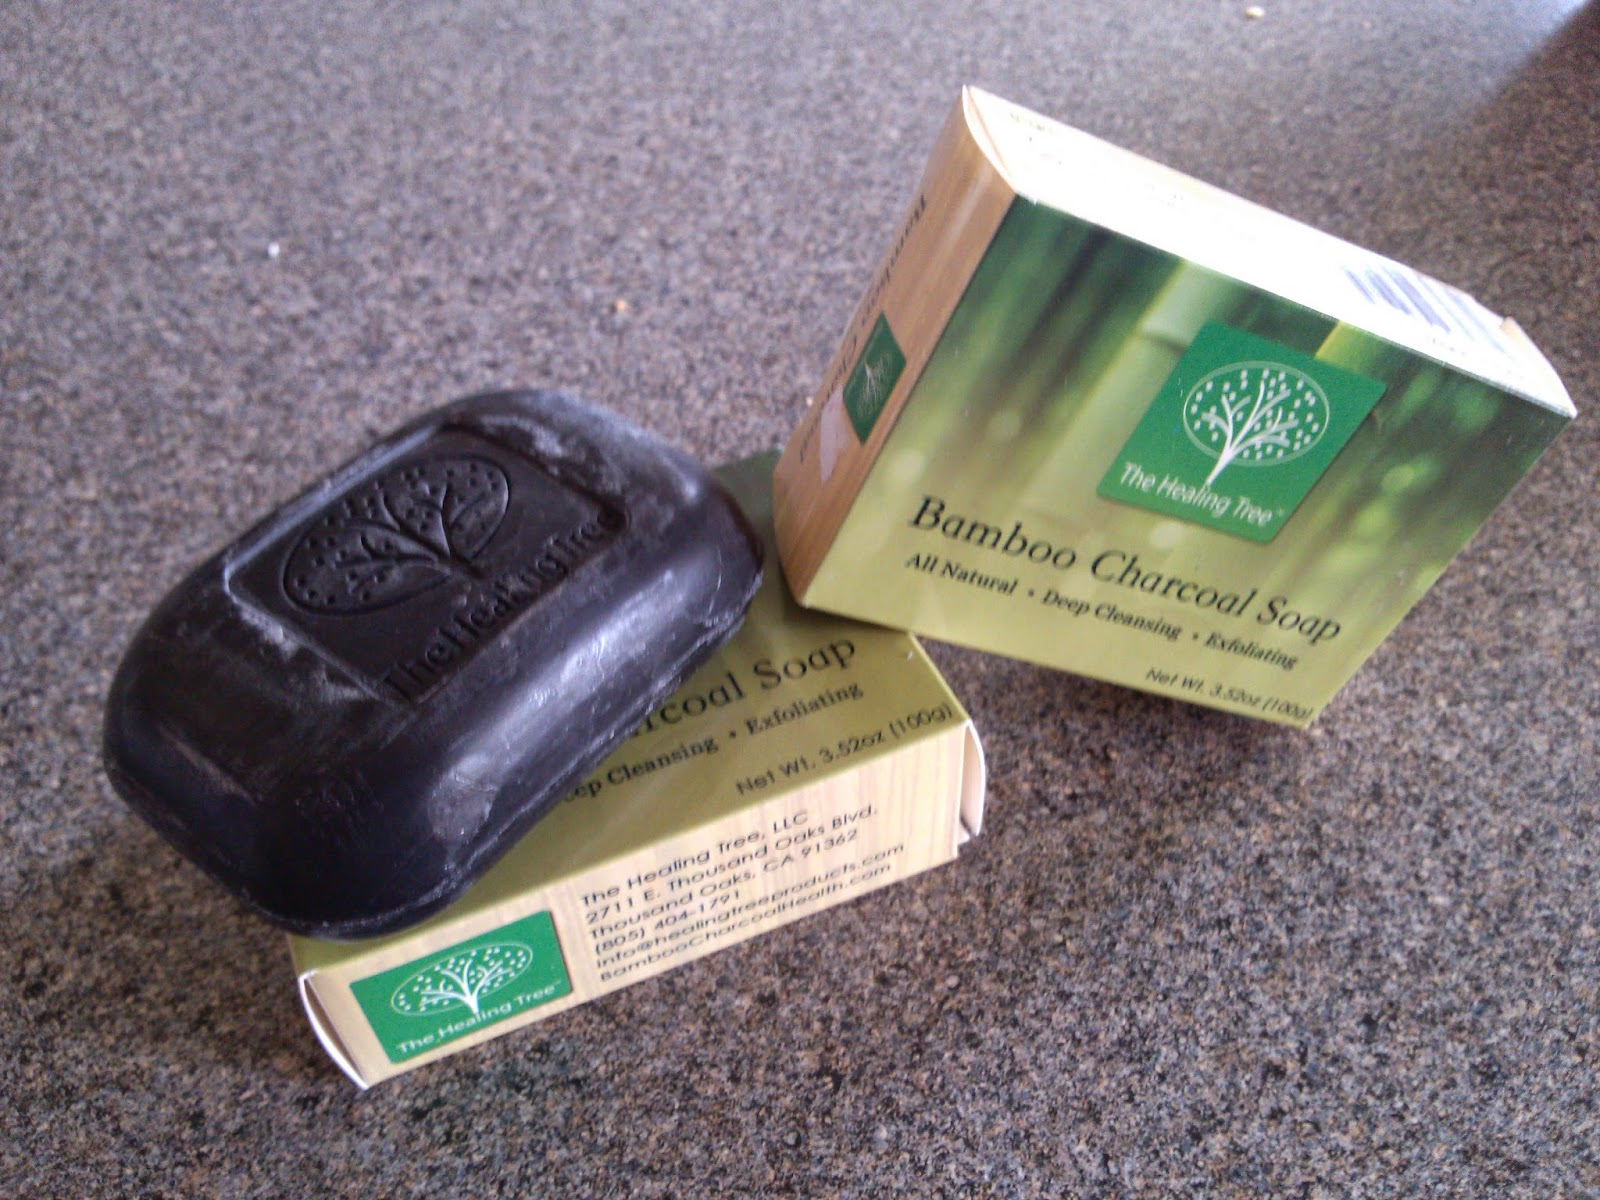 Healing Tree Bamboo Charcoal Soap Review